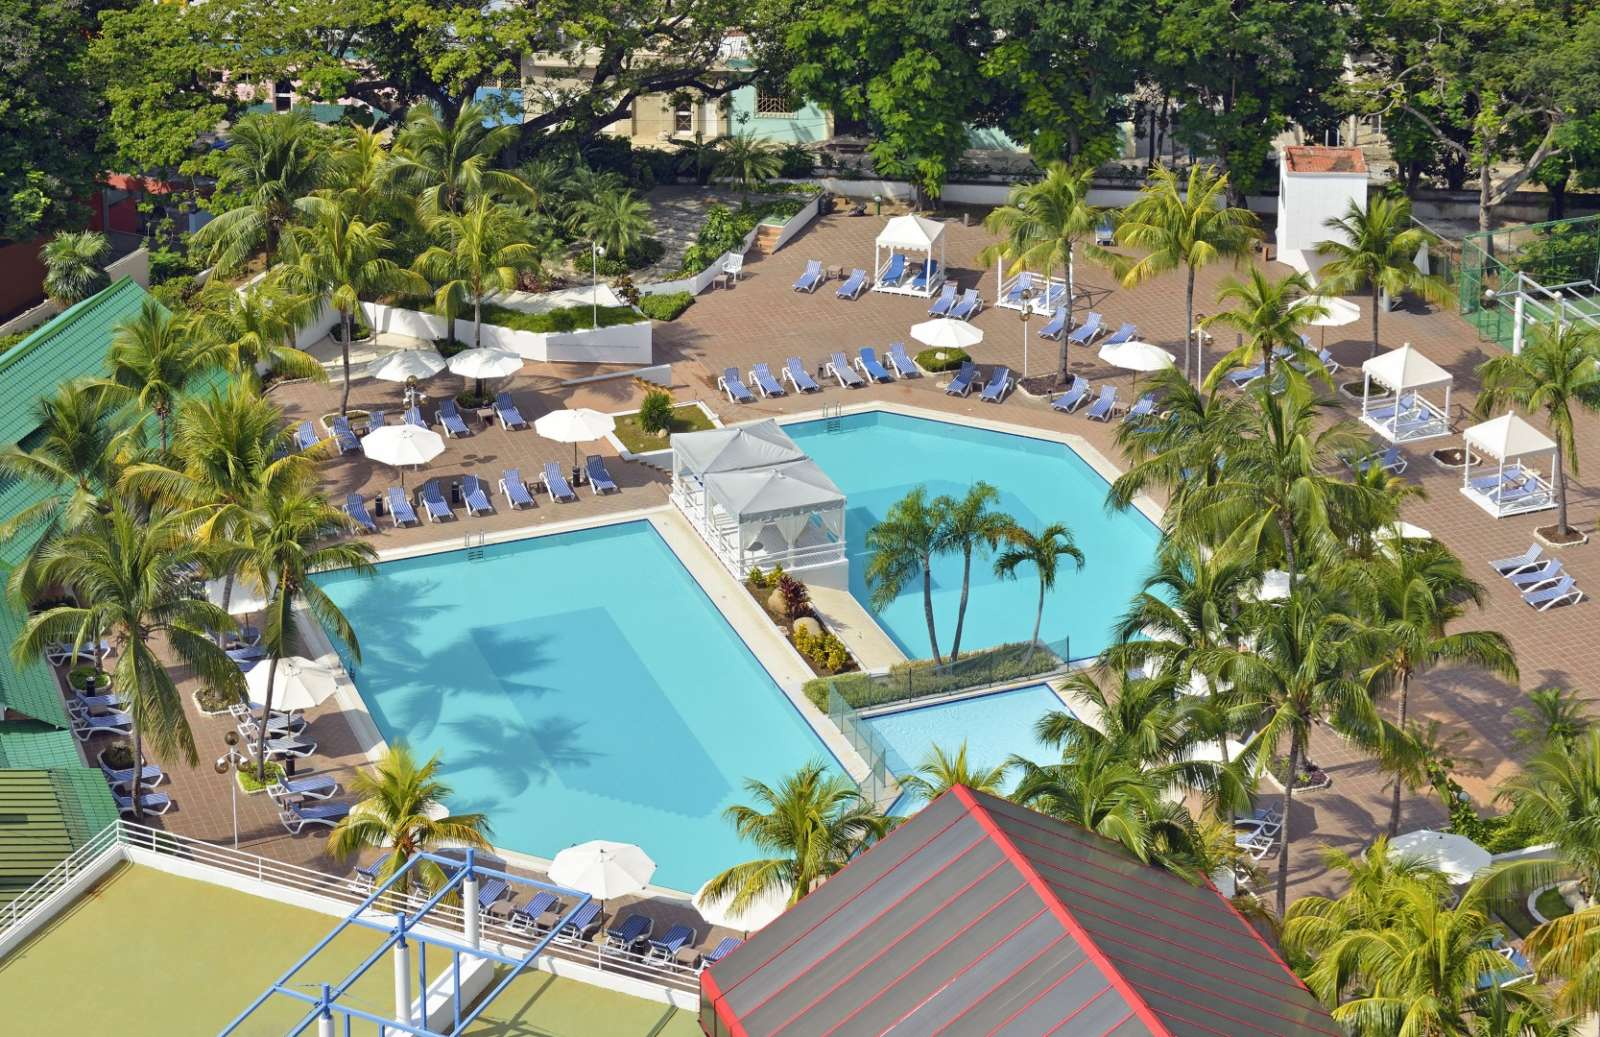 Aerial view of pool area at Melia Santiago